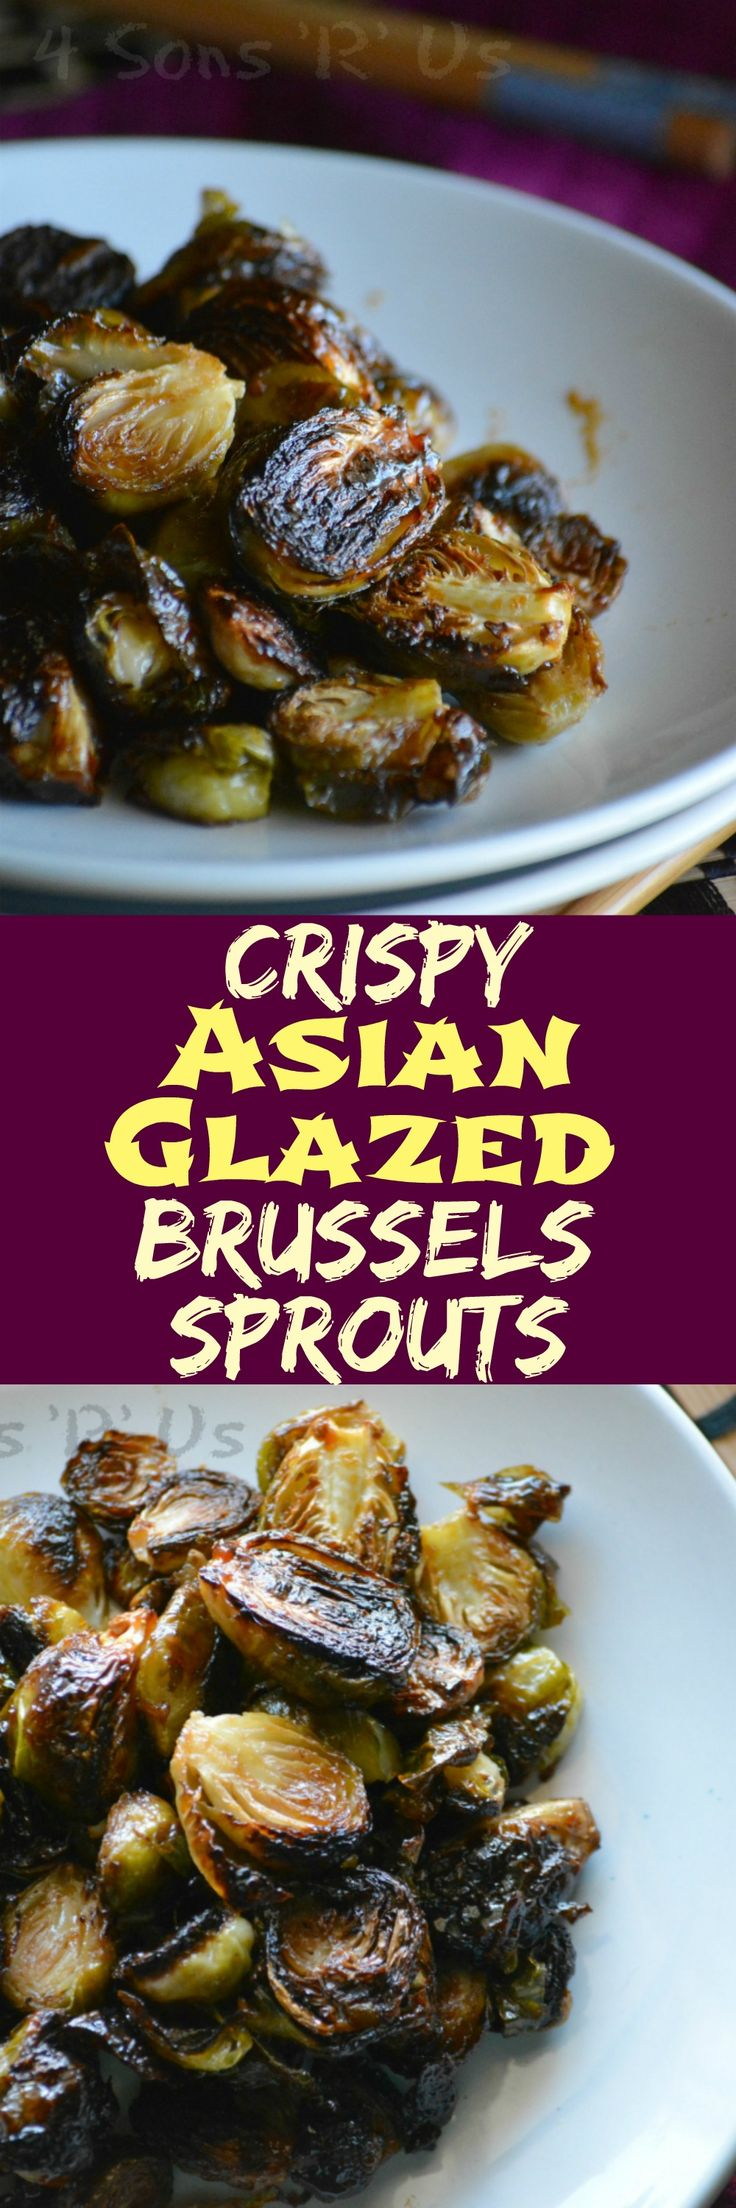 Crispy asian glazed brussel sprouts, use spray oil or veg stock